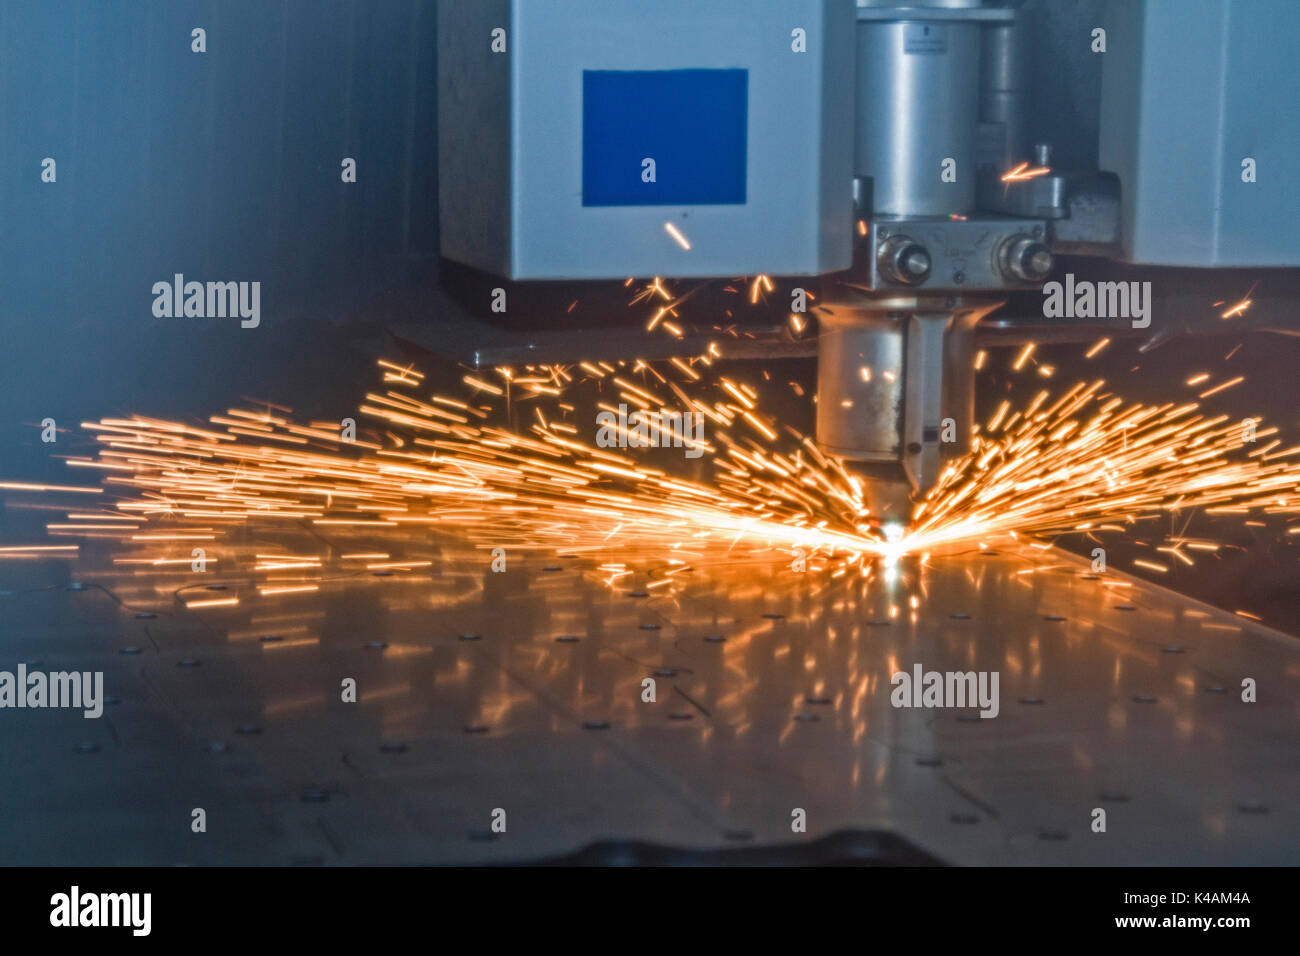 Latest Technology In Metal Processing Is Now In Demand - Stock Image